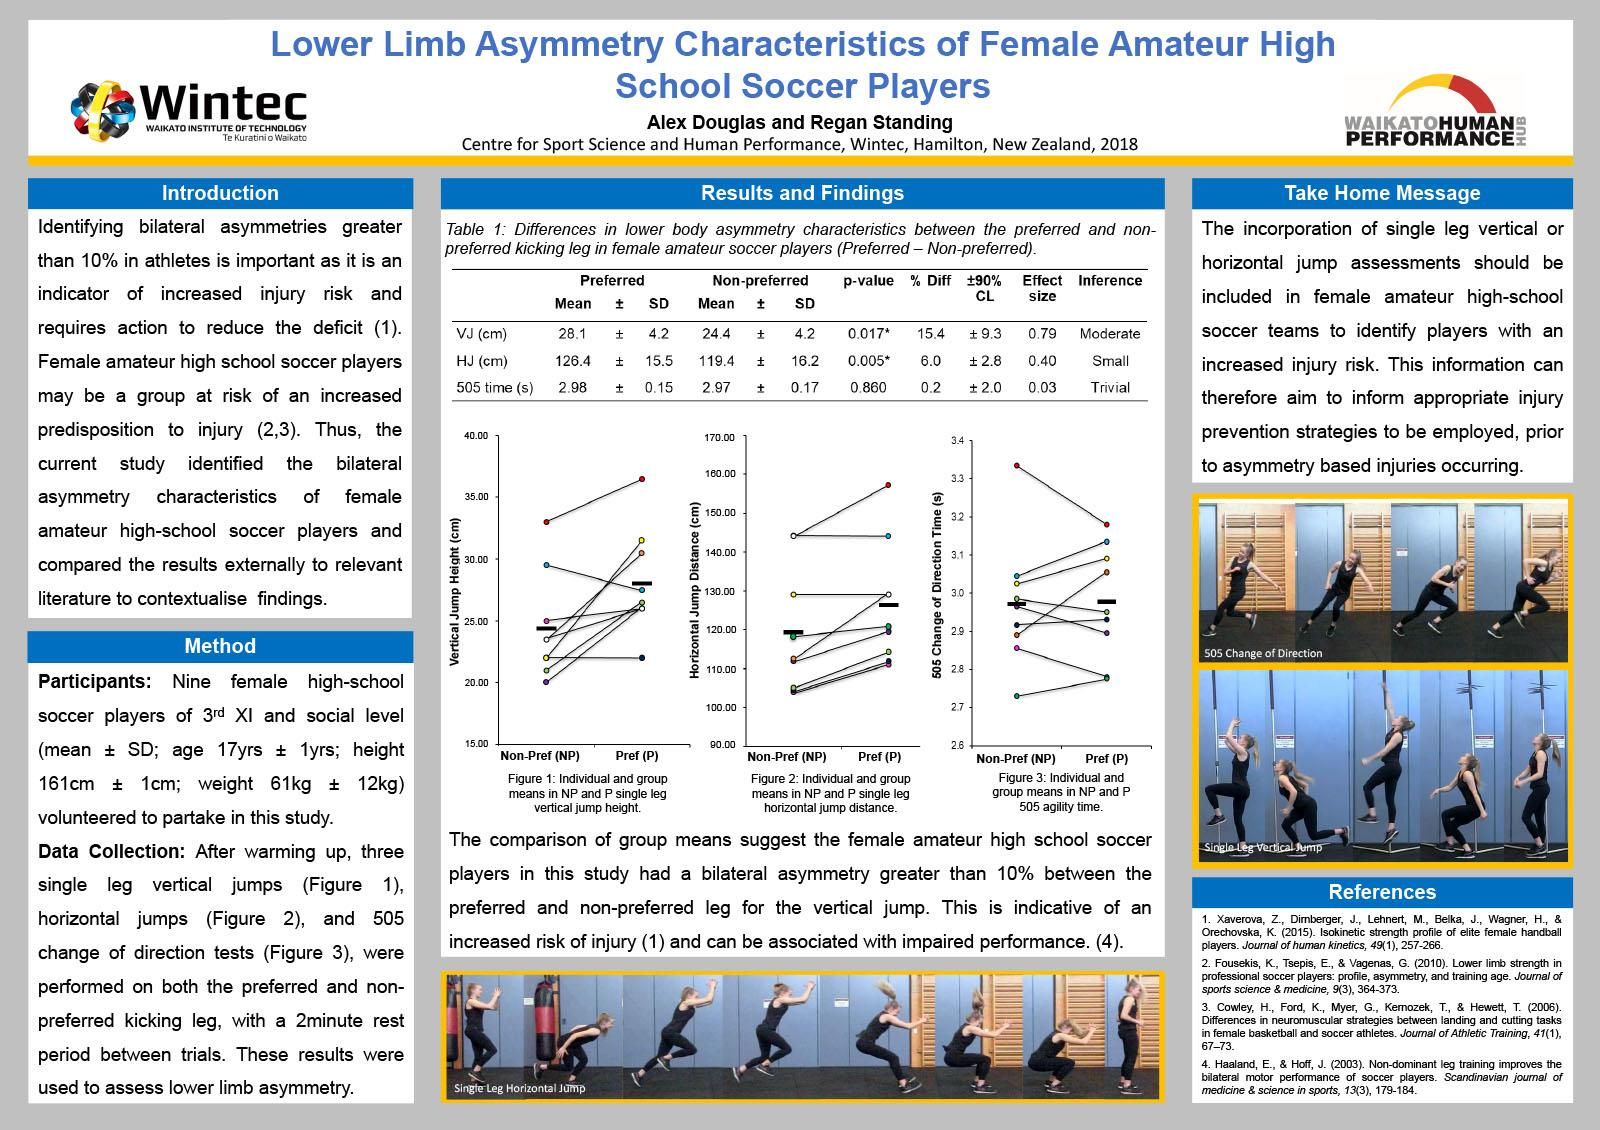 Lower Limb Asymmetry Characteristics of Female Amateur High School Soccer Players